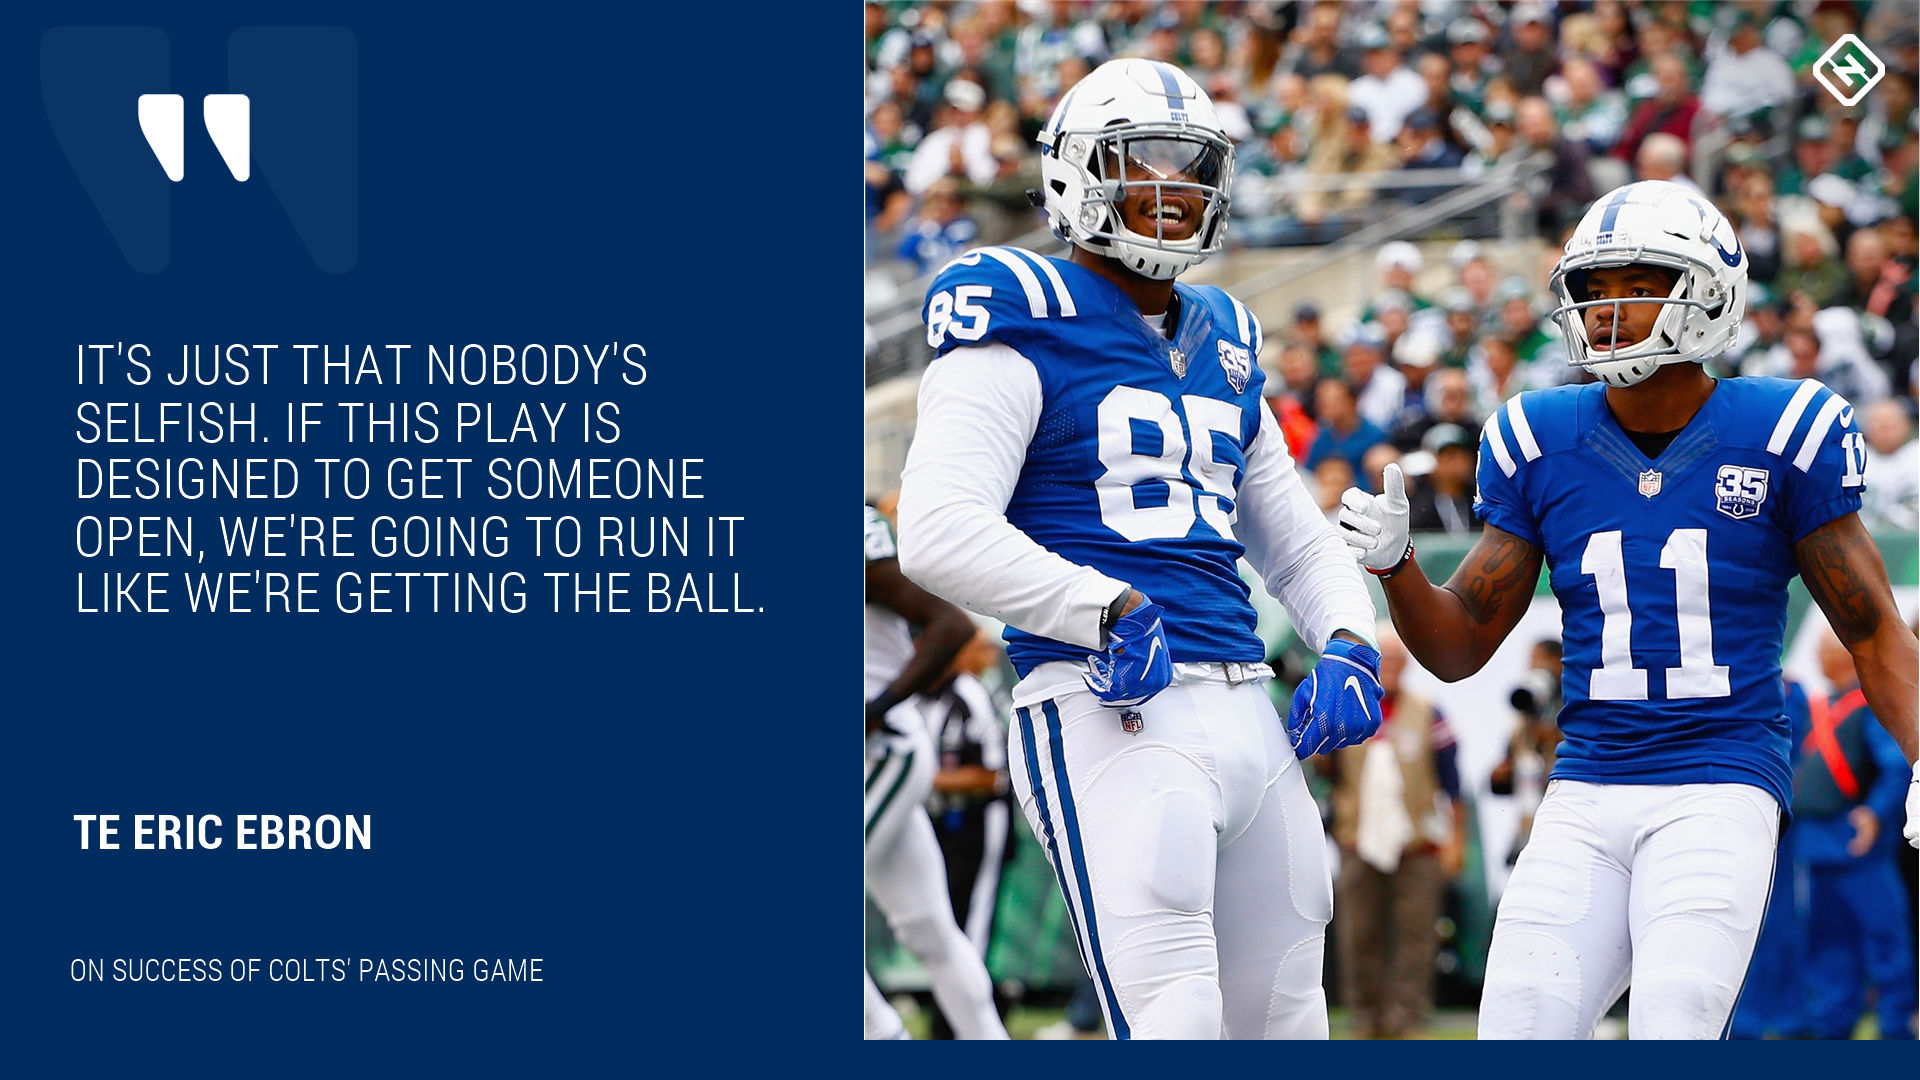 Colts-quote-2-111518-Getty-FTR.jpg